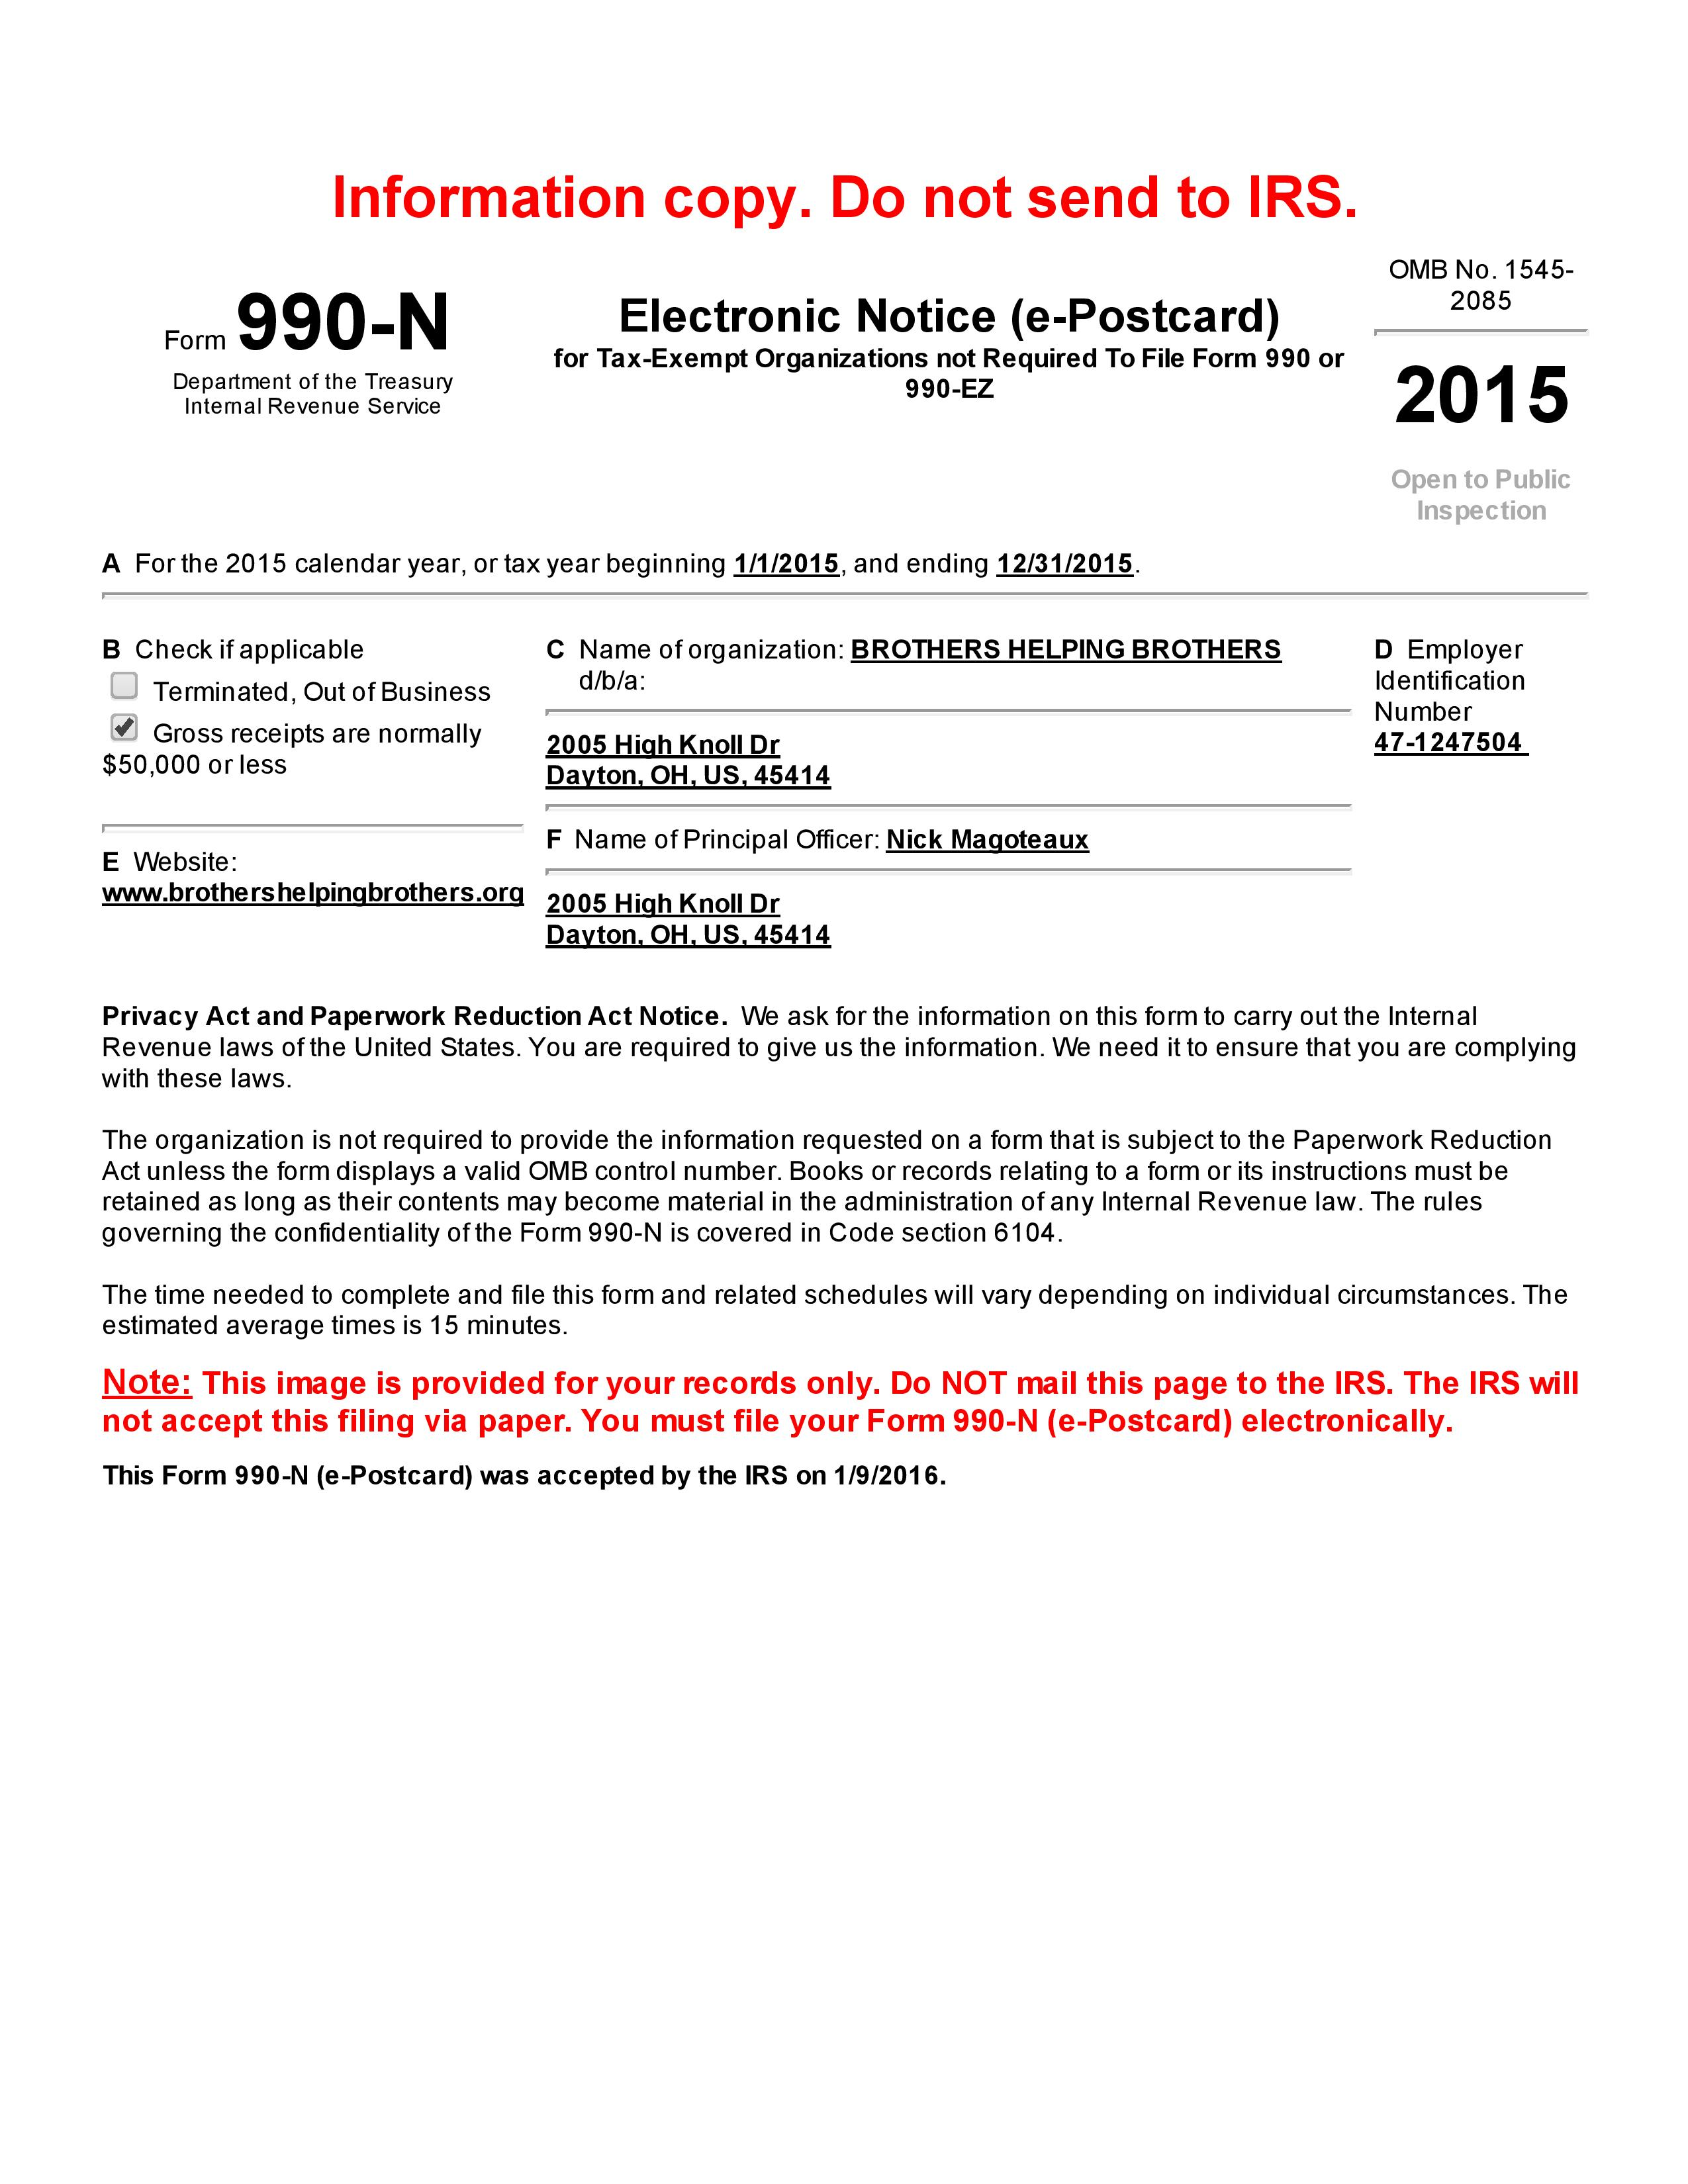 Form 990-N (e-Postcard) Online – View and Print Return-page-001 ...